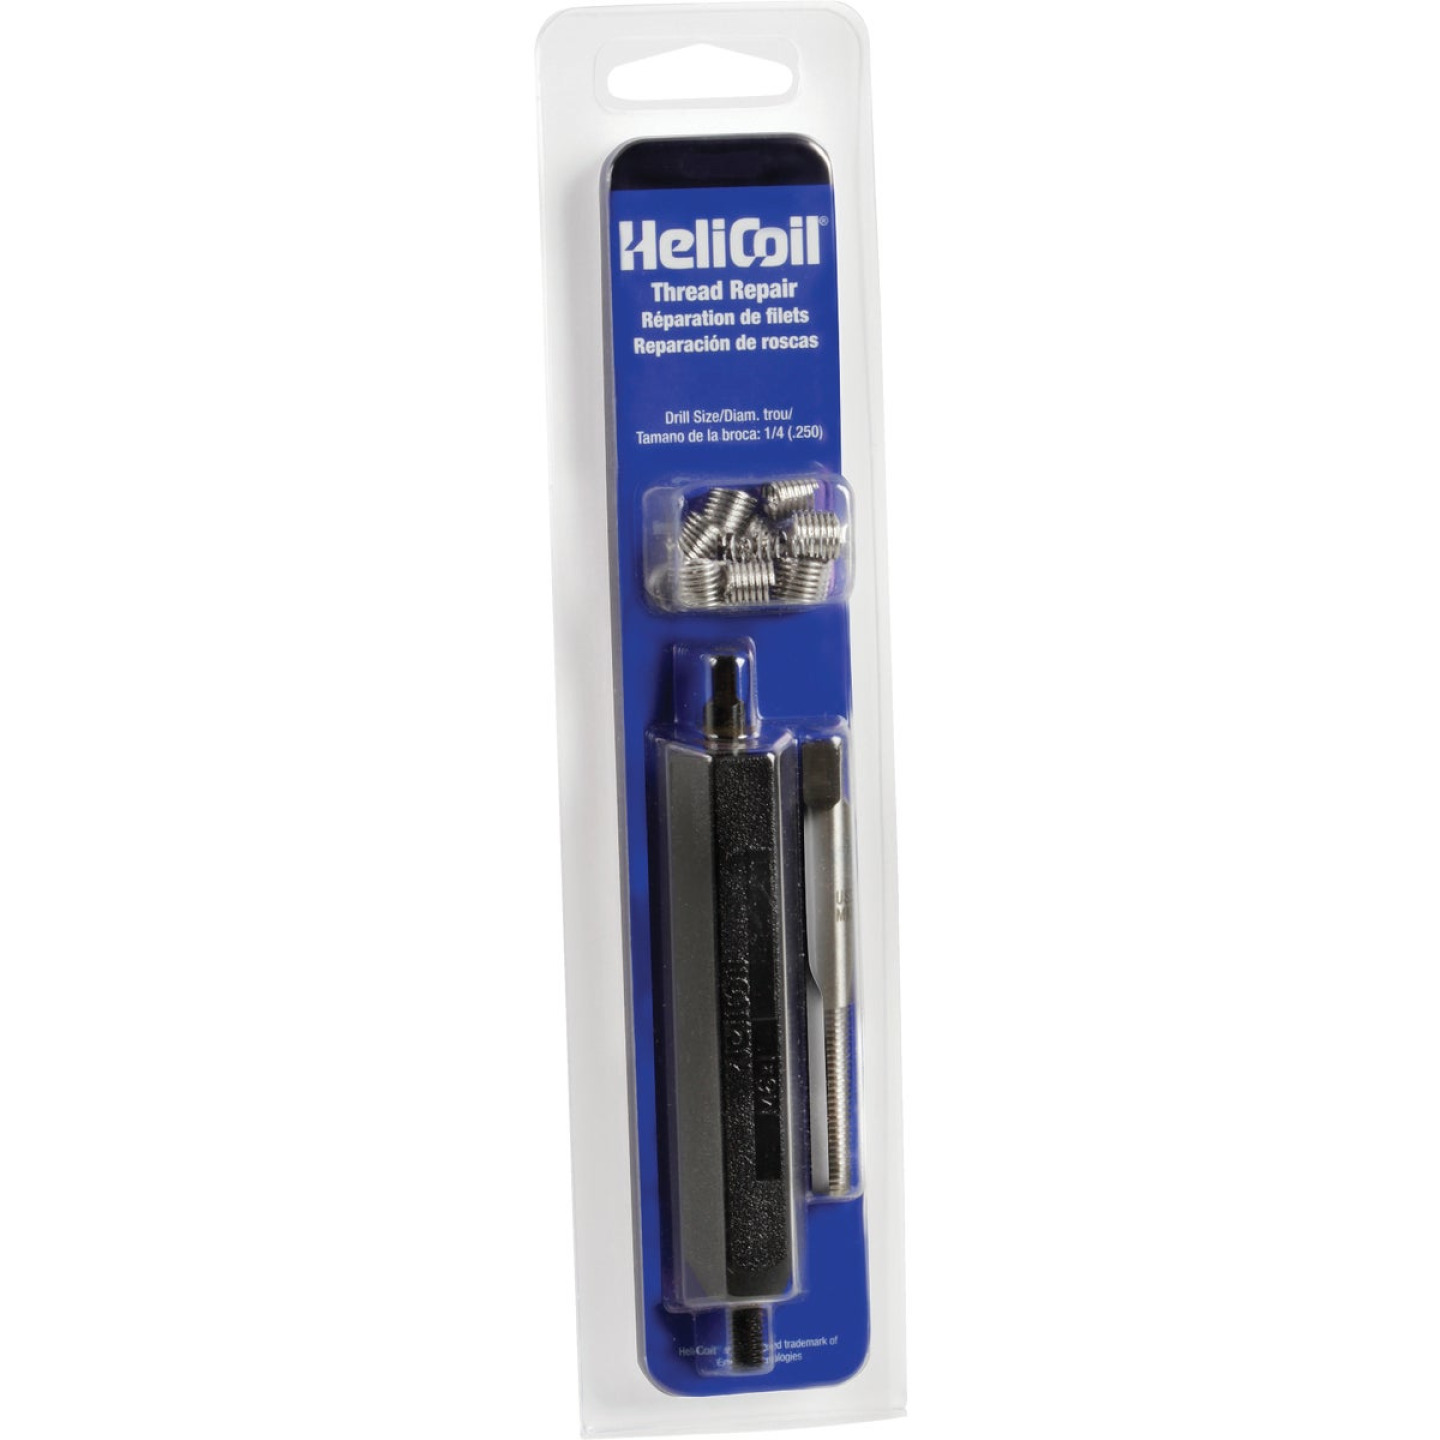 HeliCoil M10 x 1.50 Stainless Steel Thread Repair Kit Image 1